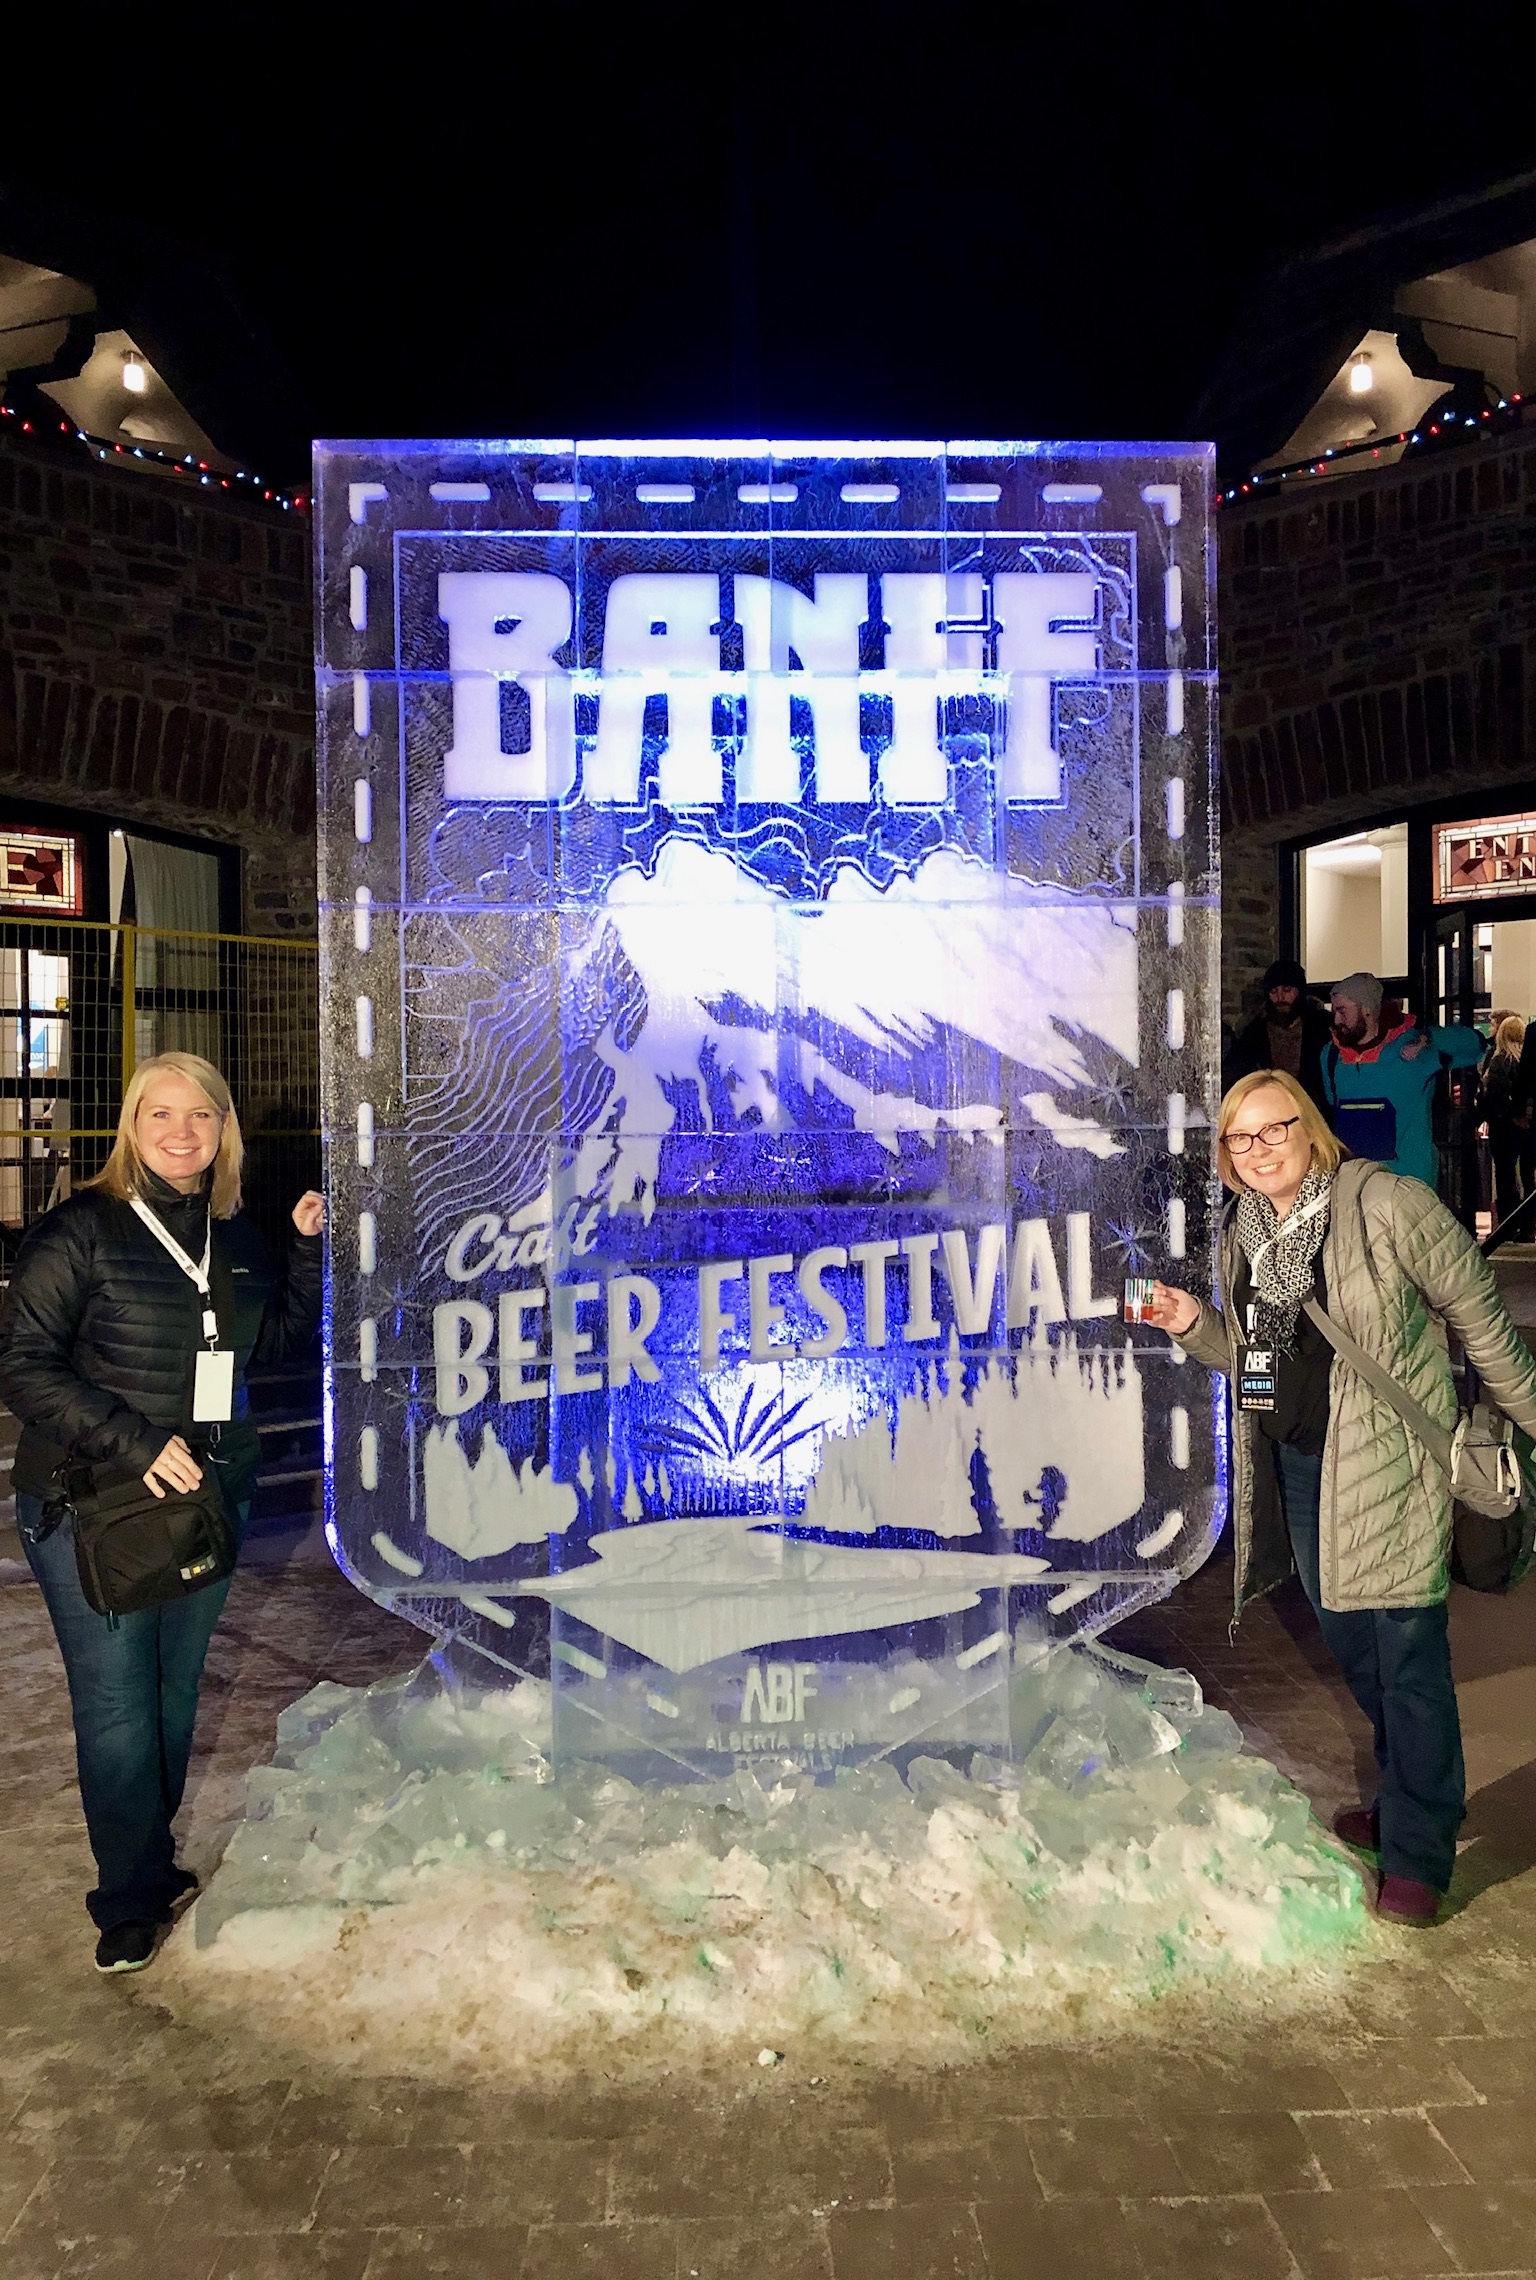 Sarah & Catherine with the Ice Sculpture in the outdoor area at the Banff Craft Beer Festival.